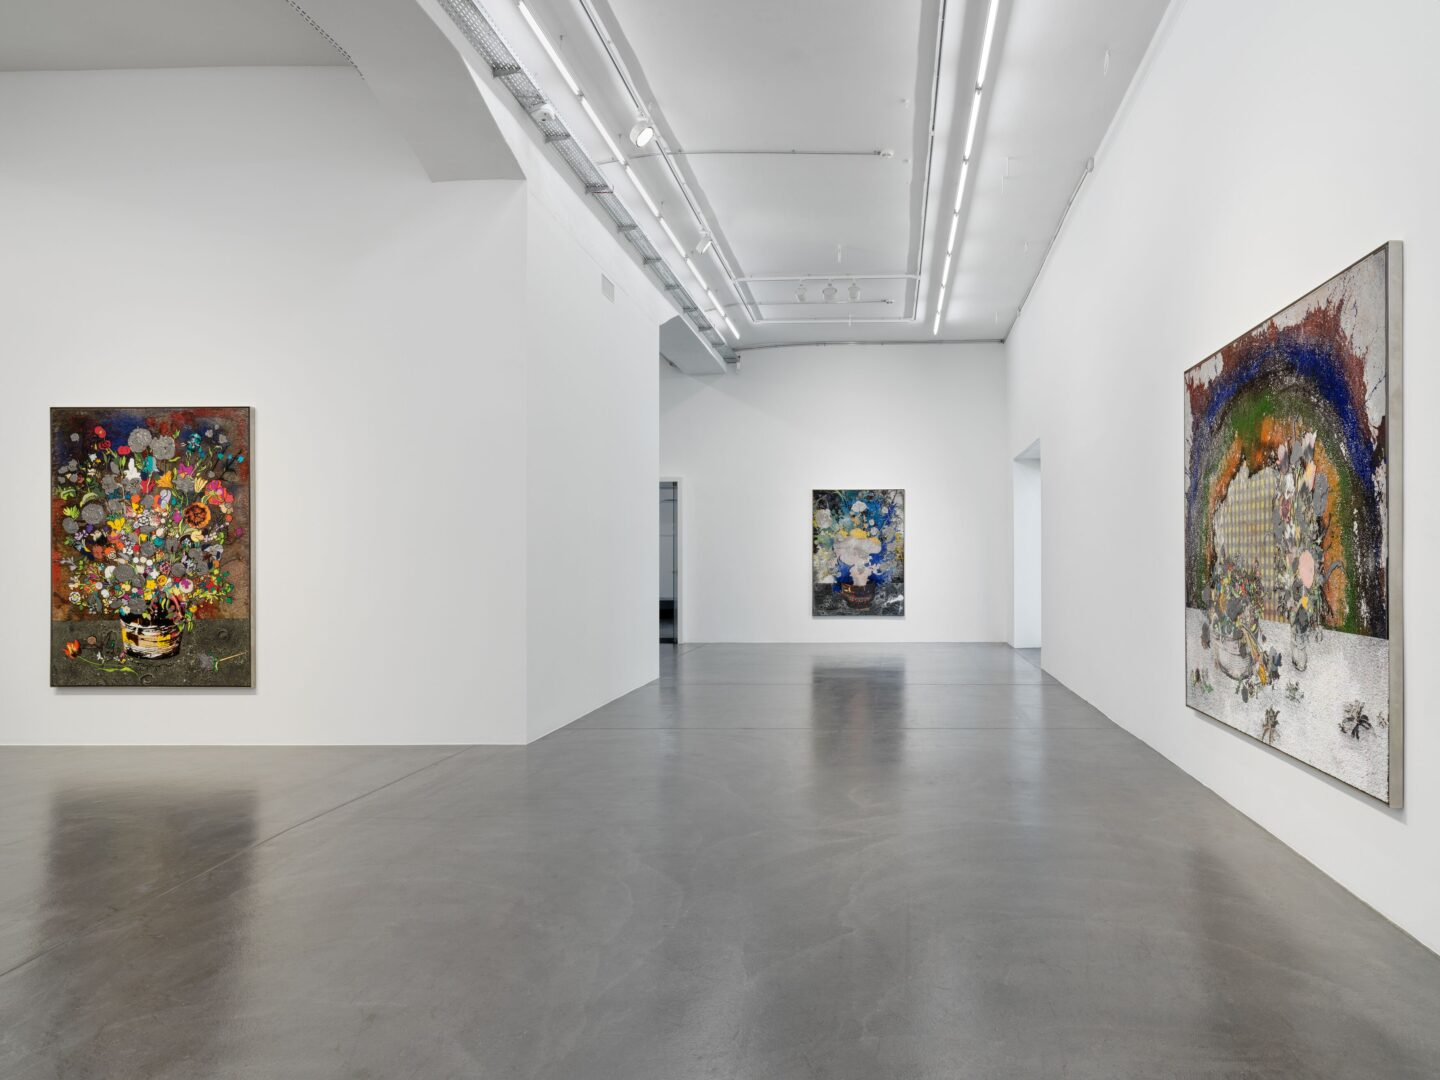 Exhibition View Matthew Day Jackson Soloshow «Flowers, Windows and Thistles» at Hauser & Wirth Zürich, Zurich, 2020 / Photo: © Matthew Day Jackson / Courtesy: the artist and Hauser & Wirth